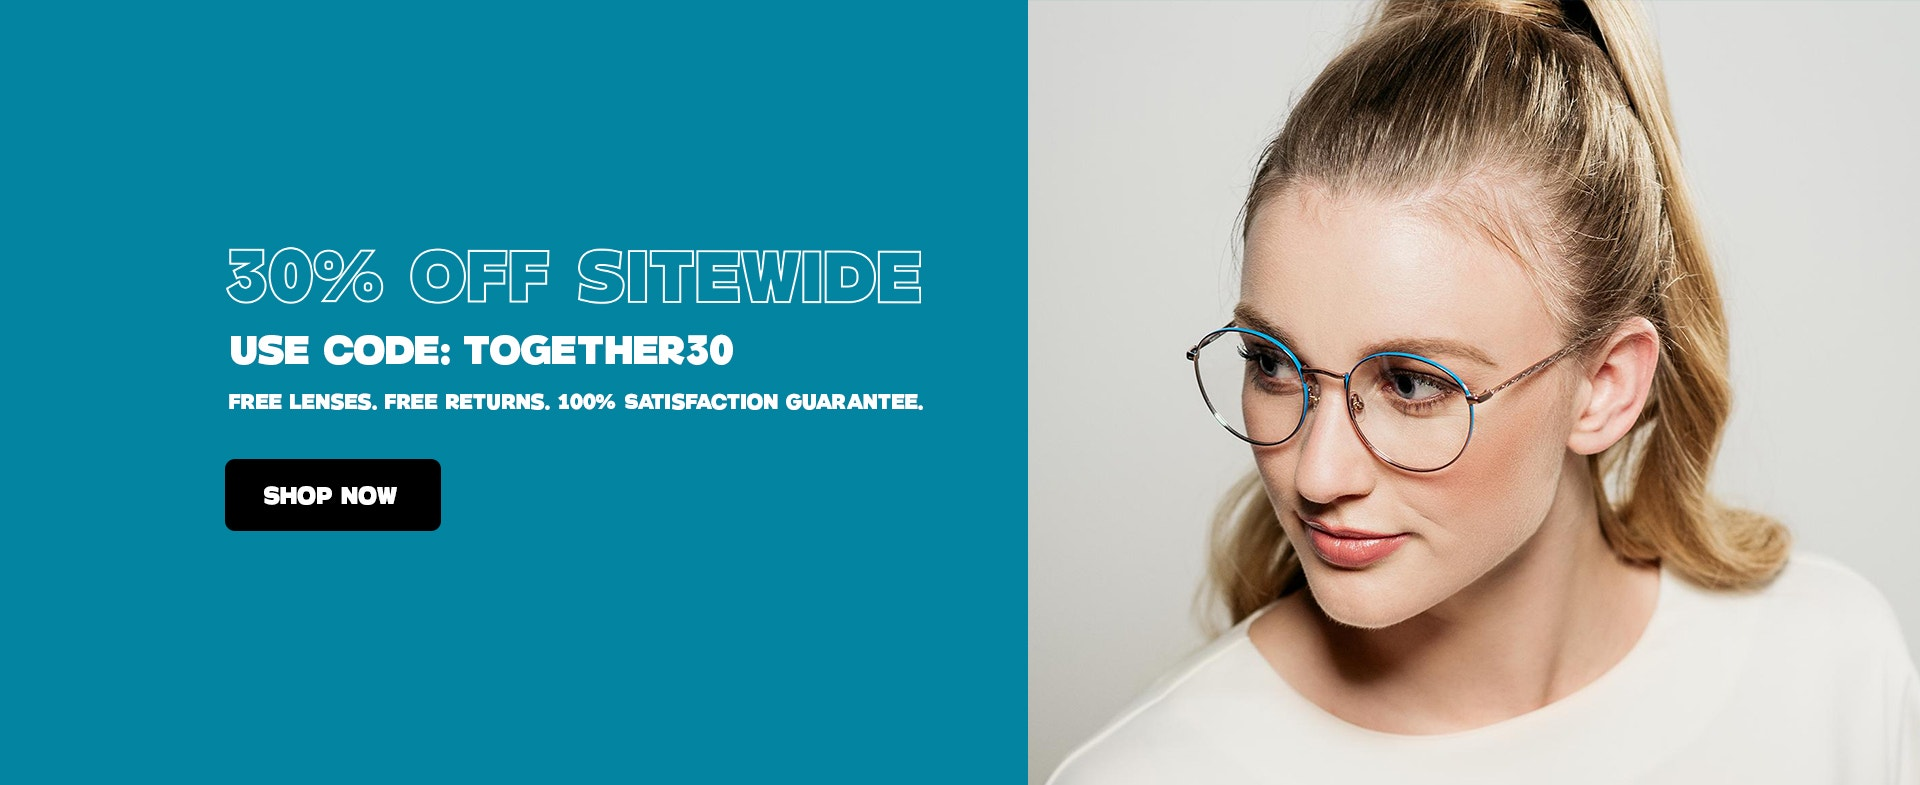 30% off a complete pair of glasses sale